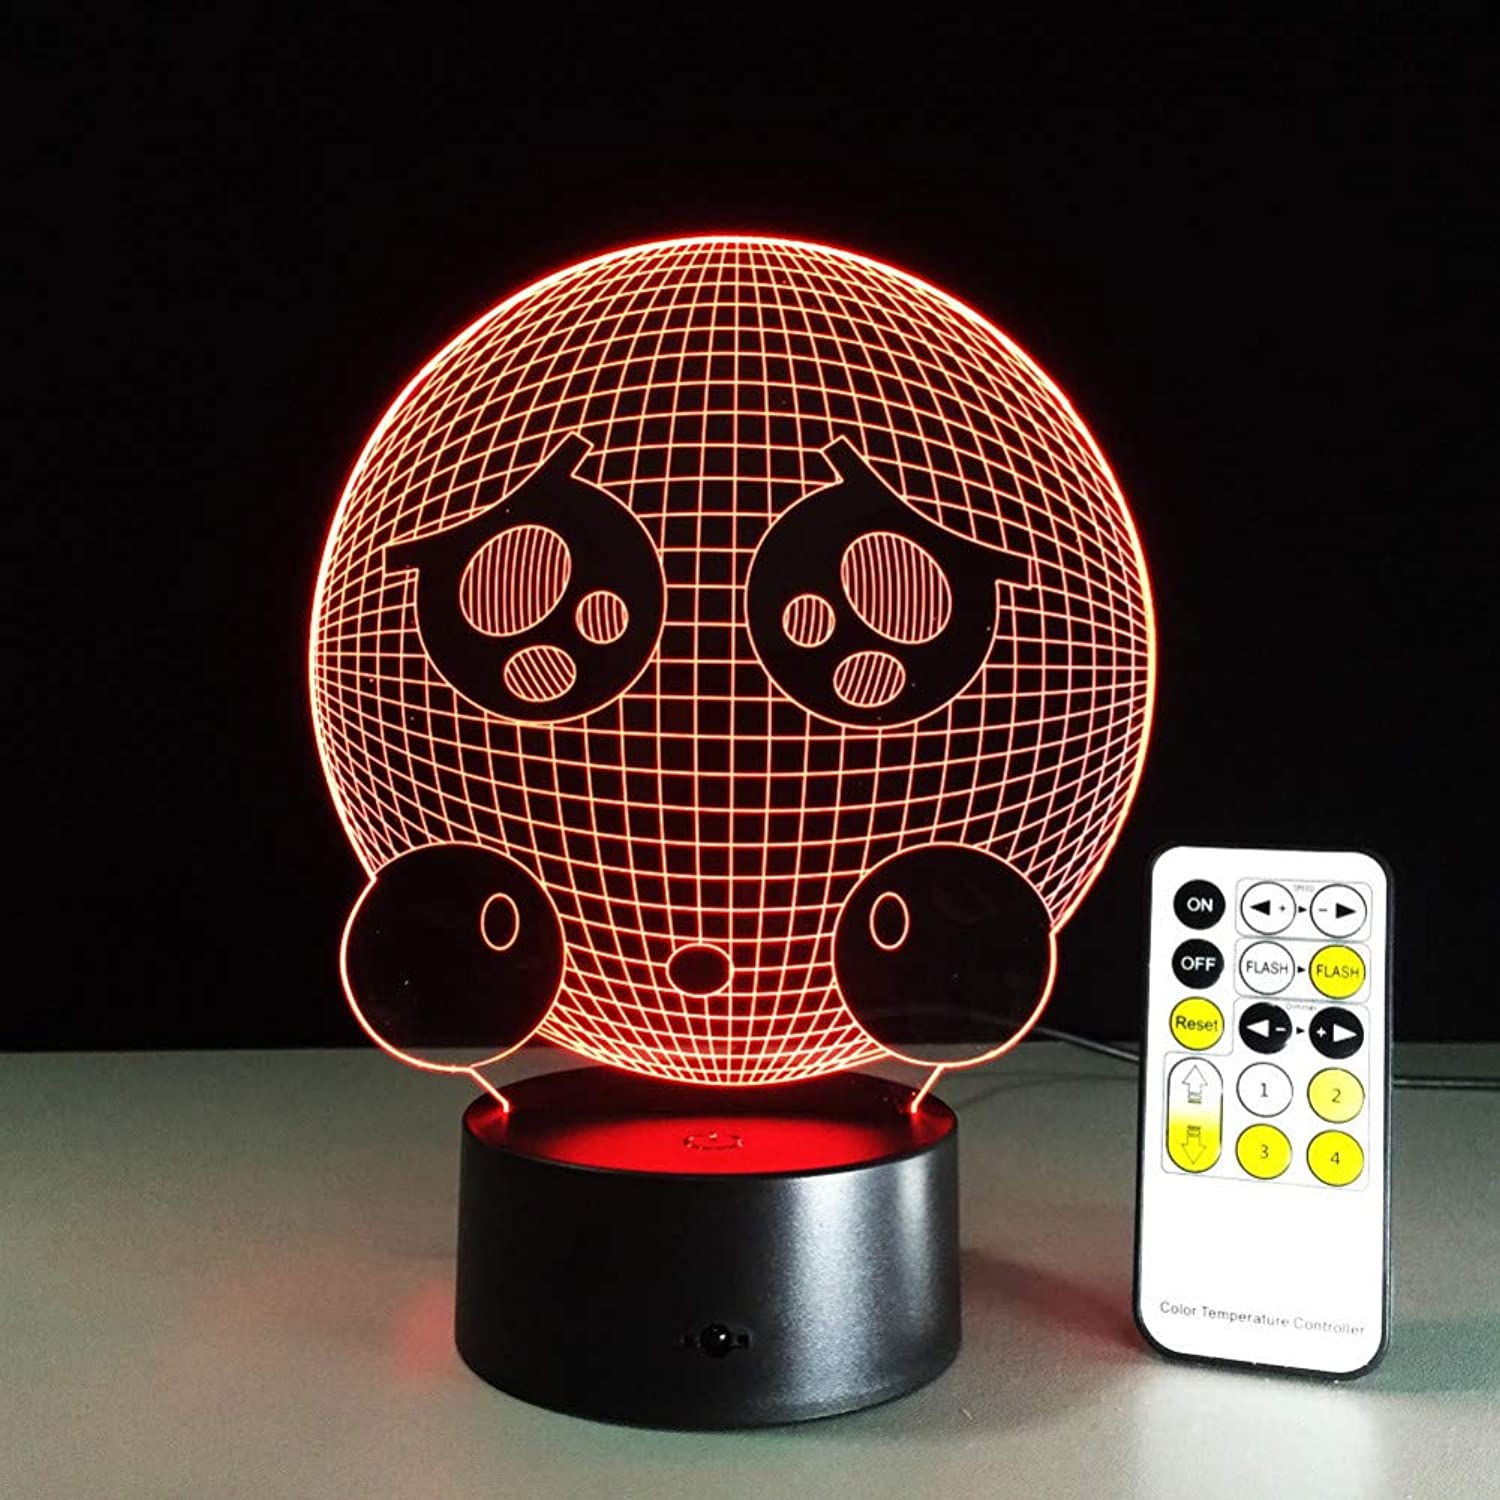 KKXXYD Remote Control Crying Face Cute 3D Night Light Led Vision Stereo Acrylic Panel Table Decoration 7 color Change Bedroom Lamp